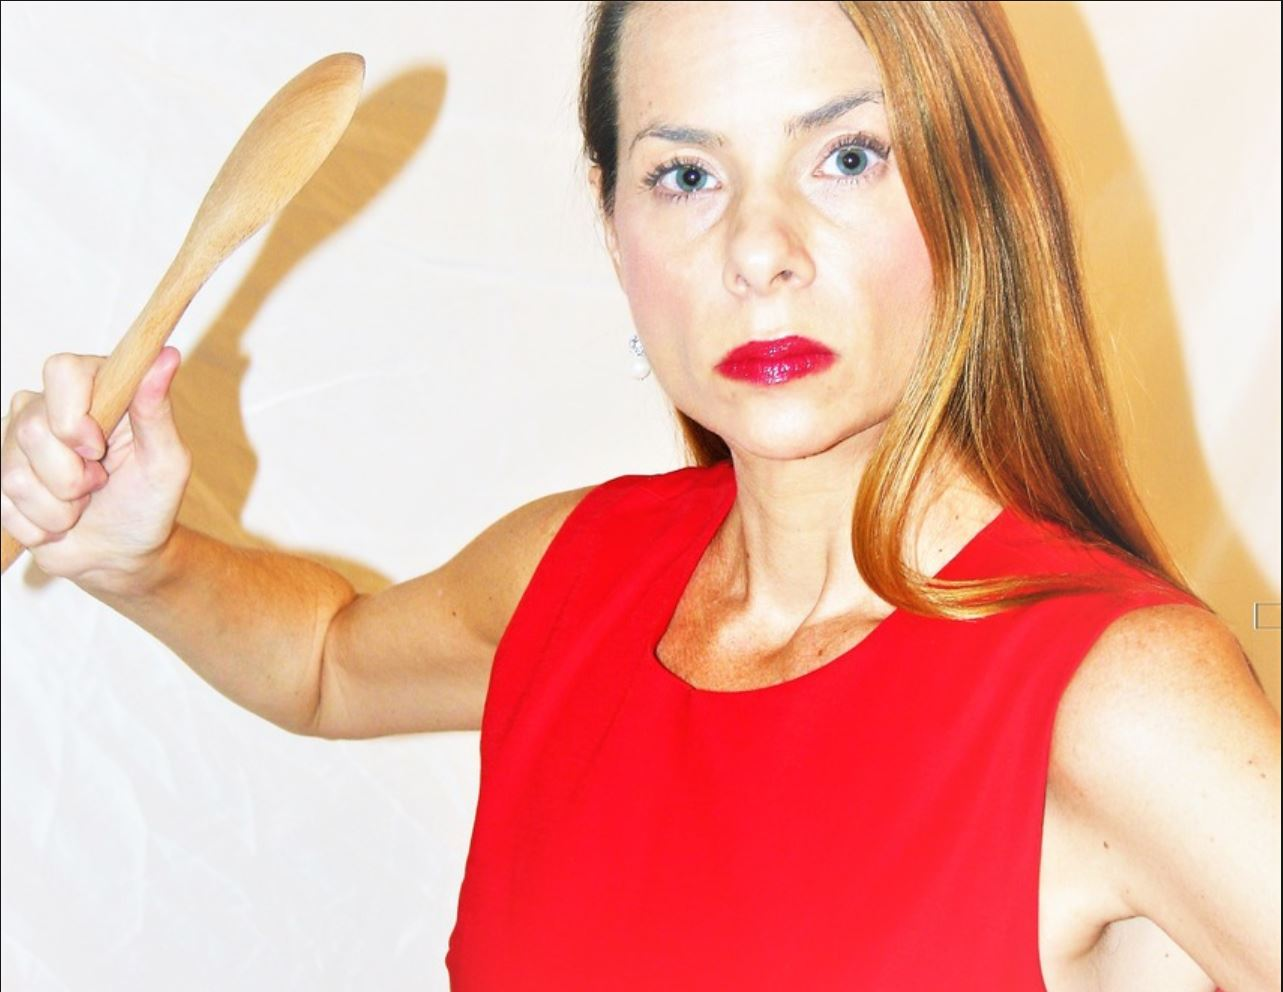 MadameSamanthaB interviews, Miss Rachel Pro disciplinarian interview, kinky interviews, MadameSamanthaB Pro Disciplinarian